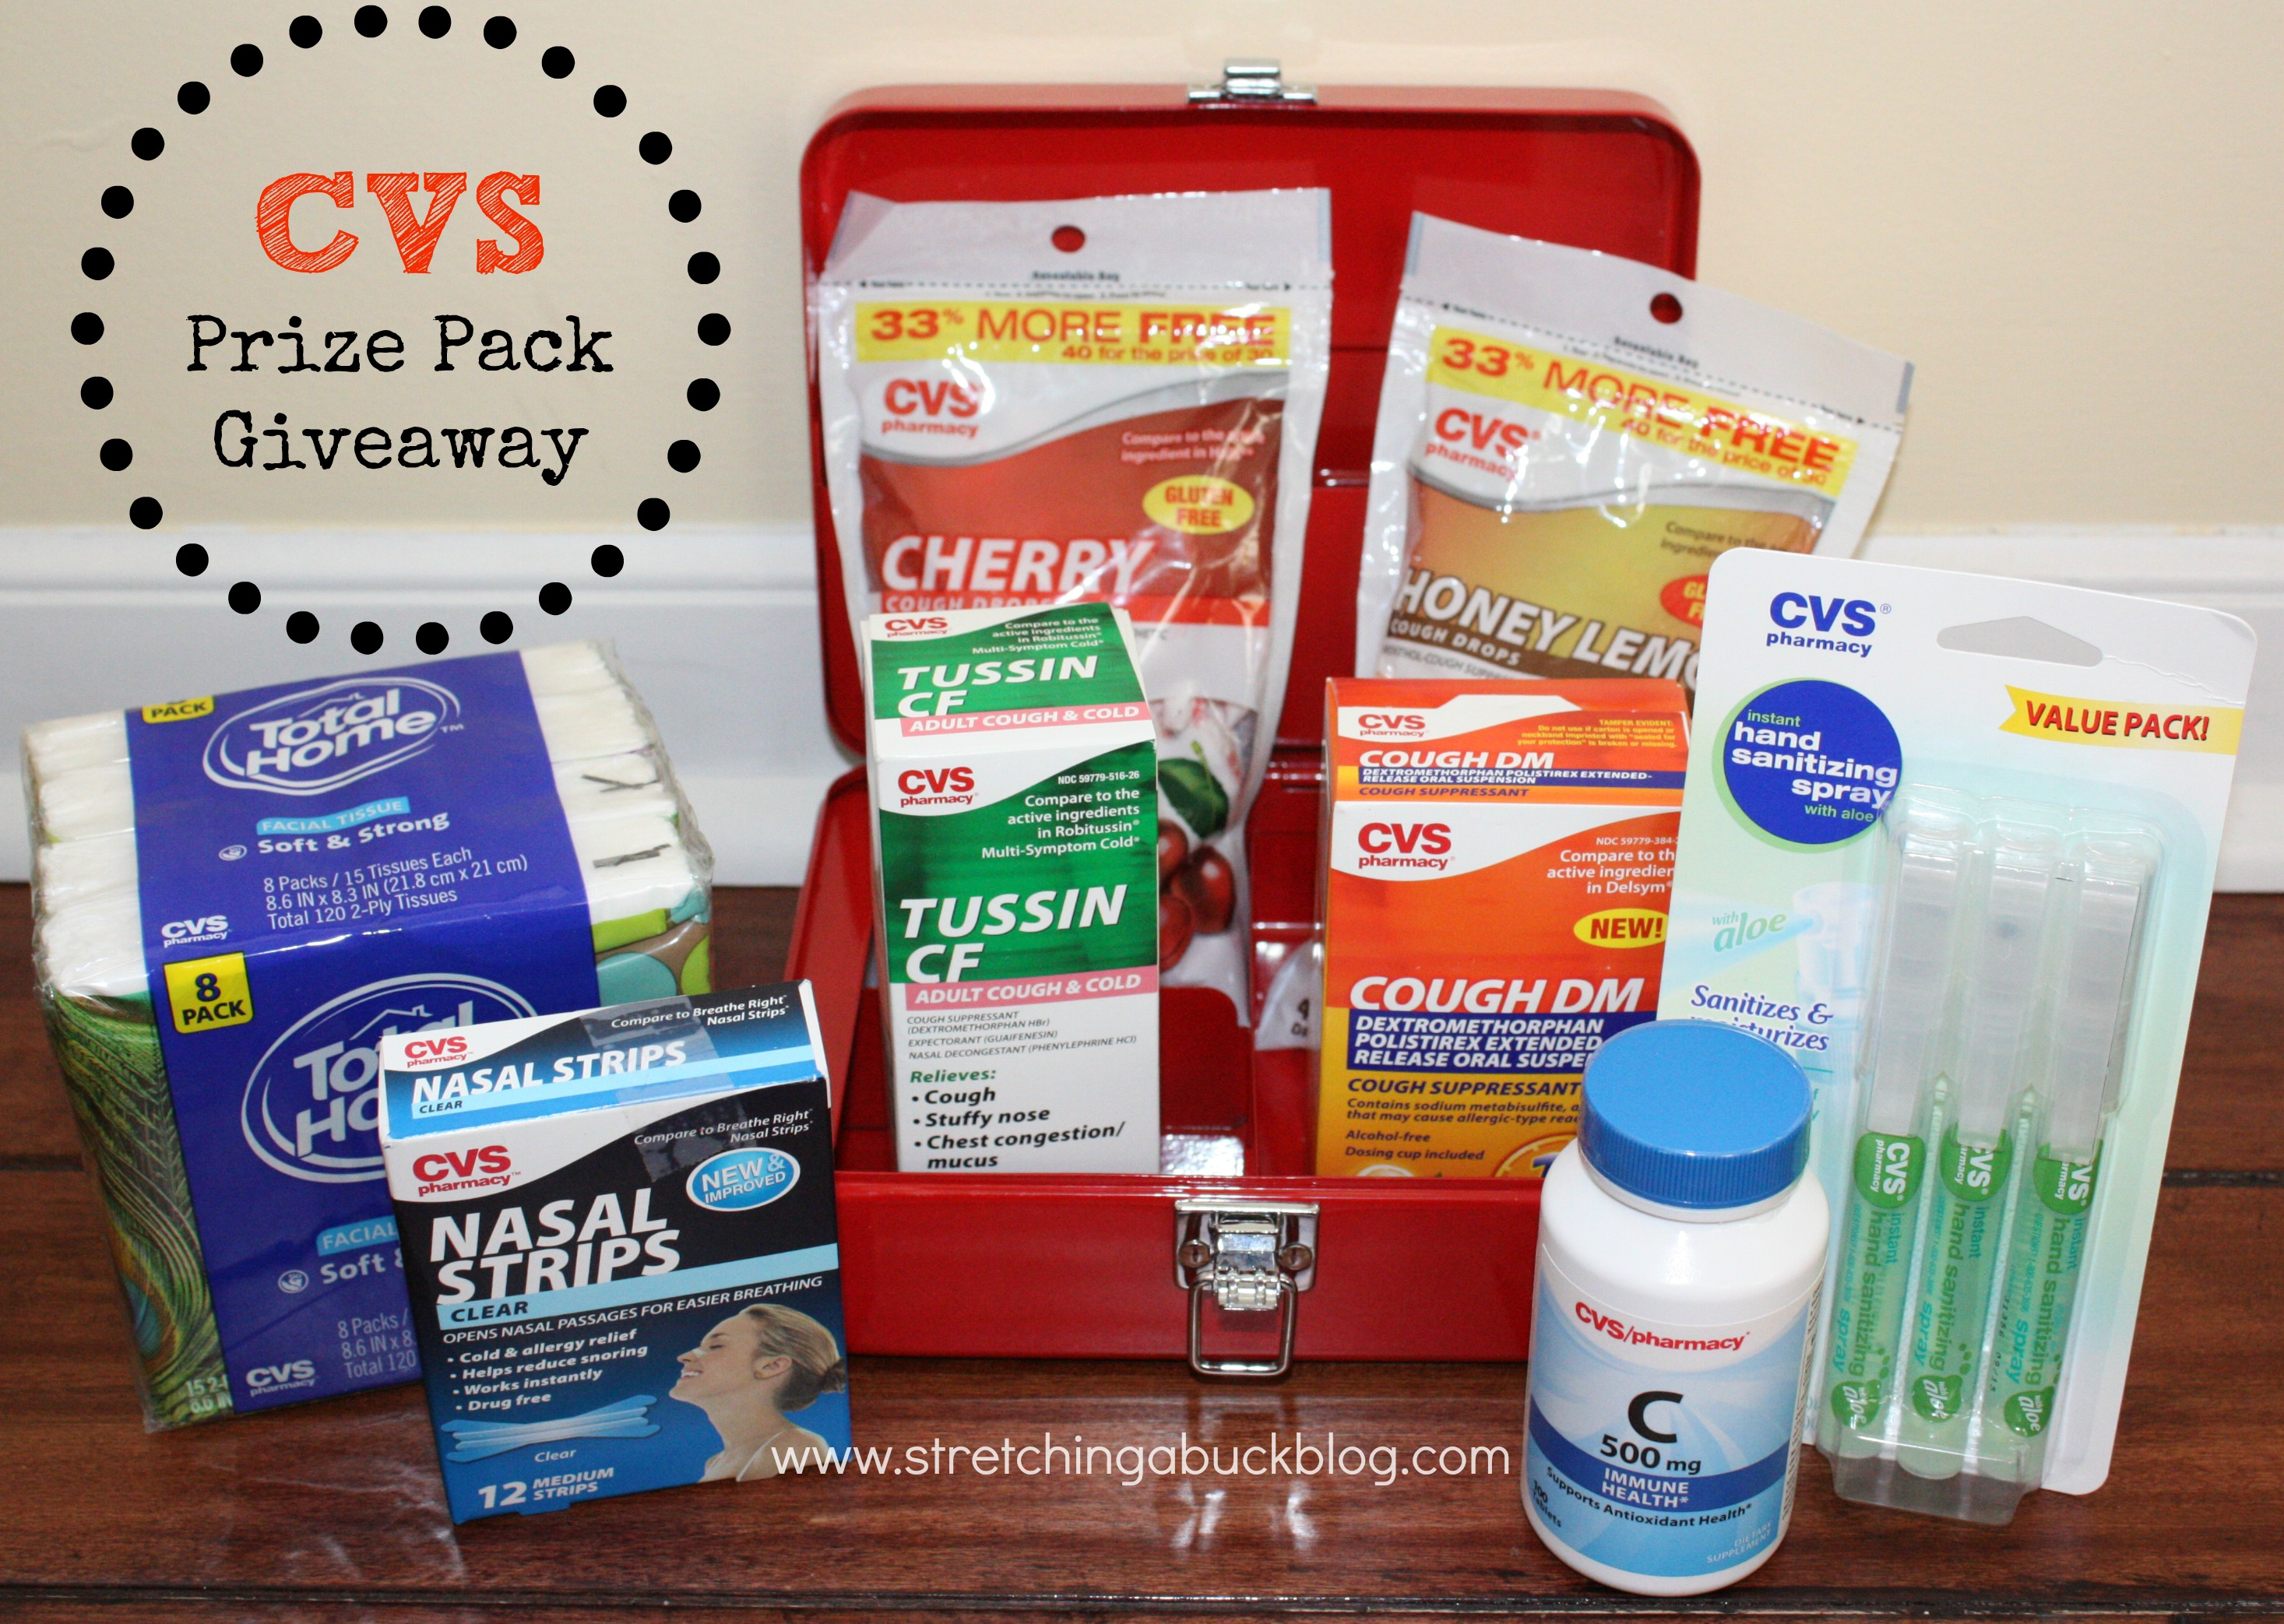 beat the flu with cvs  pharmacy   prize pack giveaway  cvsaccess